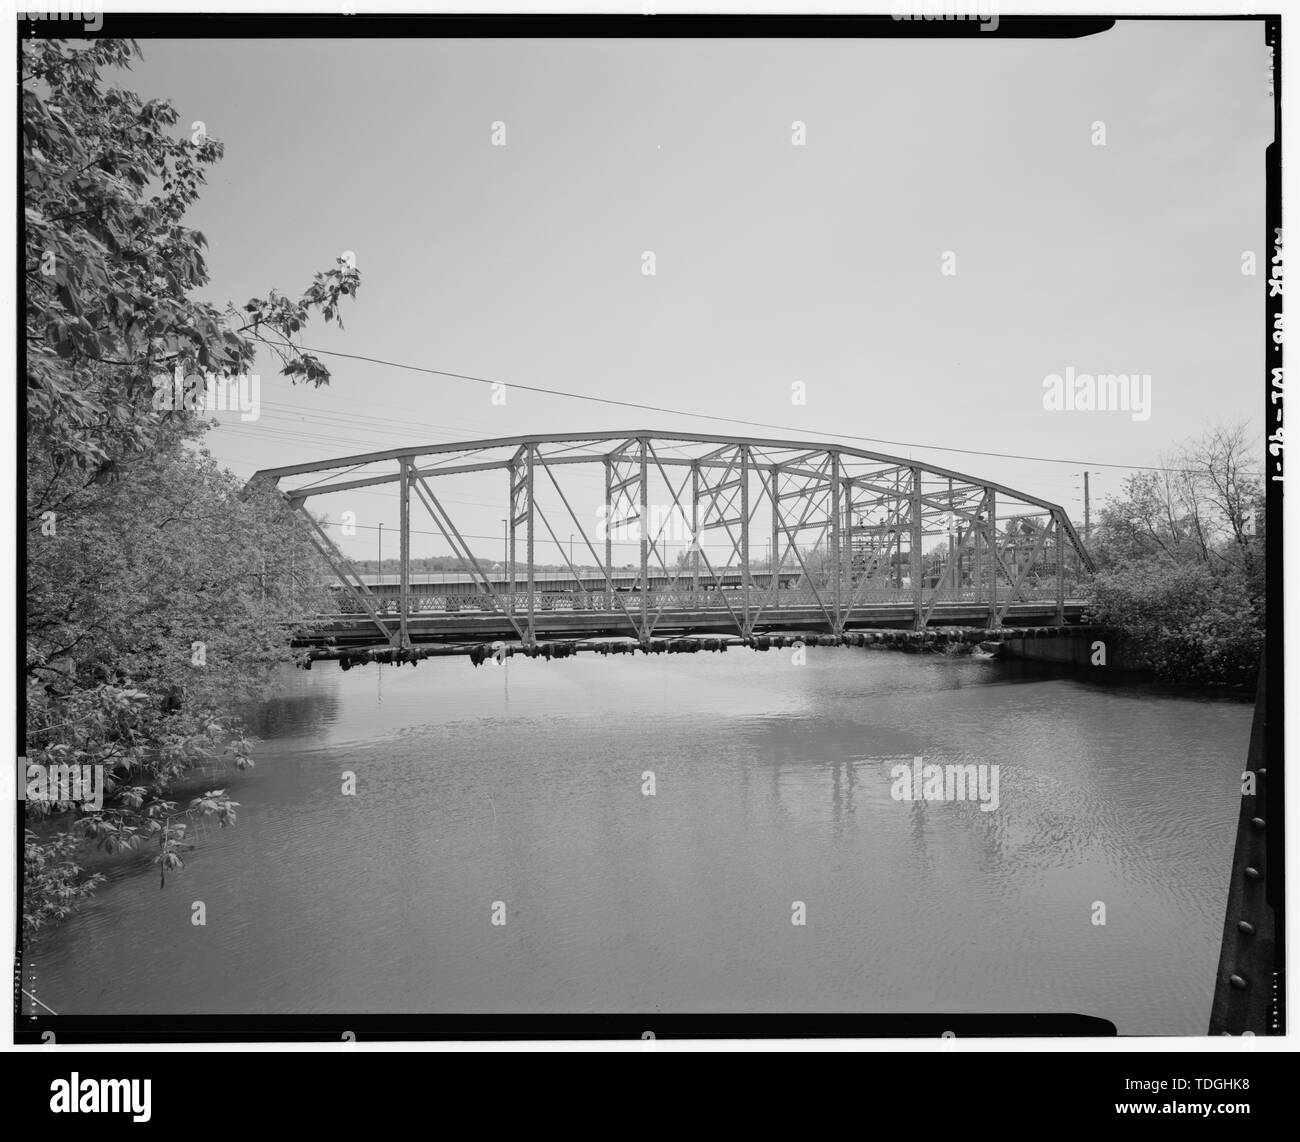 NORTHWEST SIDE, LOOKING SOUTH - Meadow Hill Drive Bridge, Spanning Wilson Creek, Menomonie, Dunn County, WI; Anderson, Al C - Stock Image